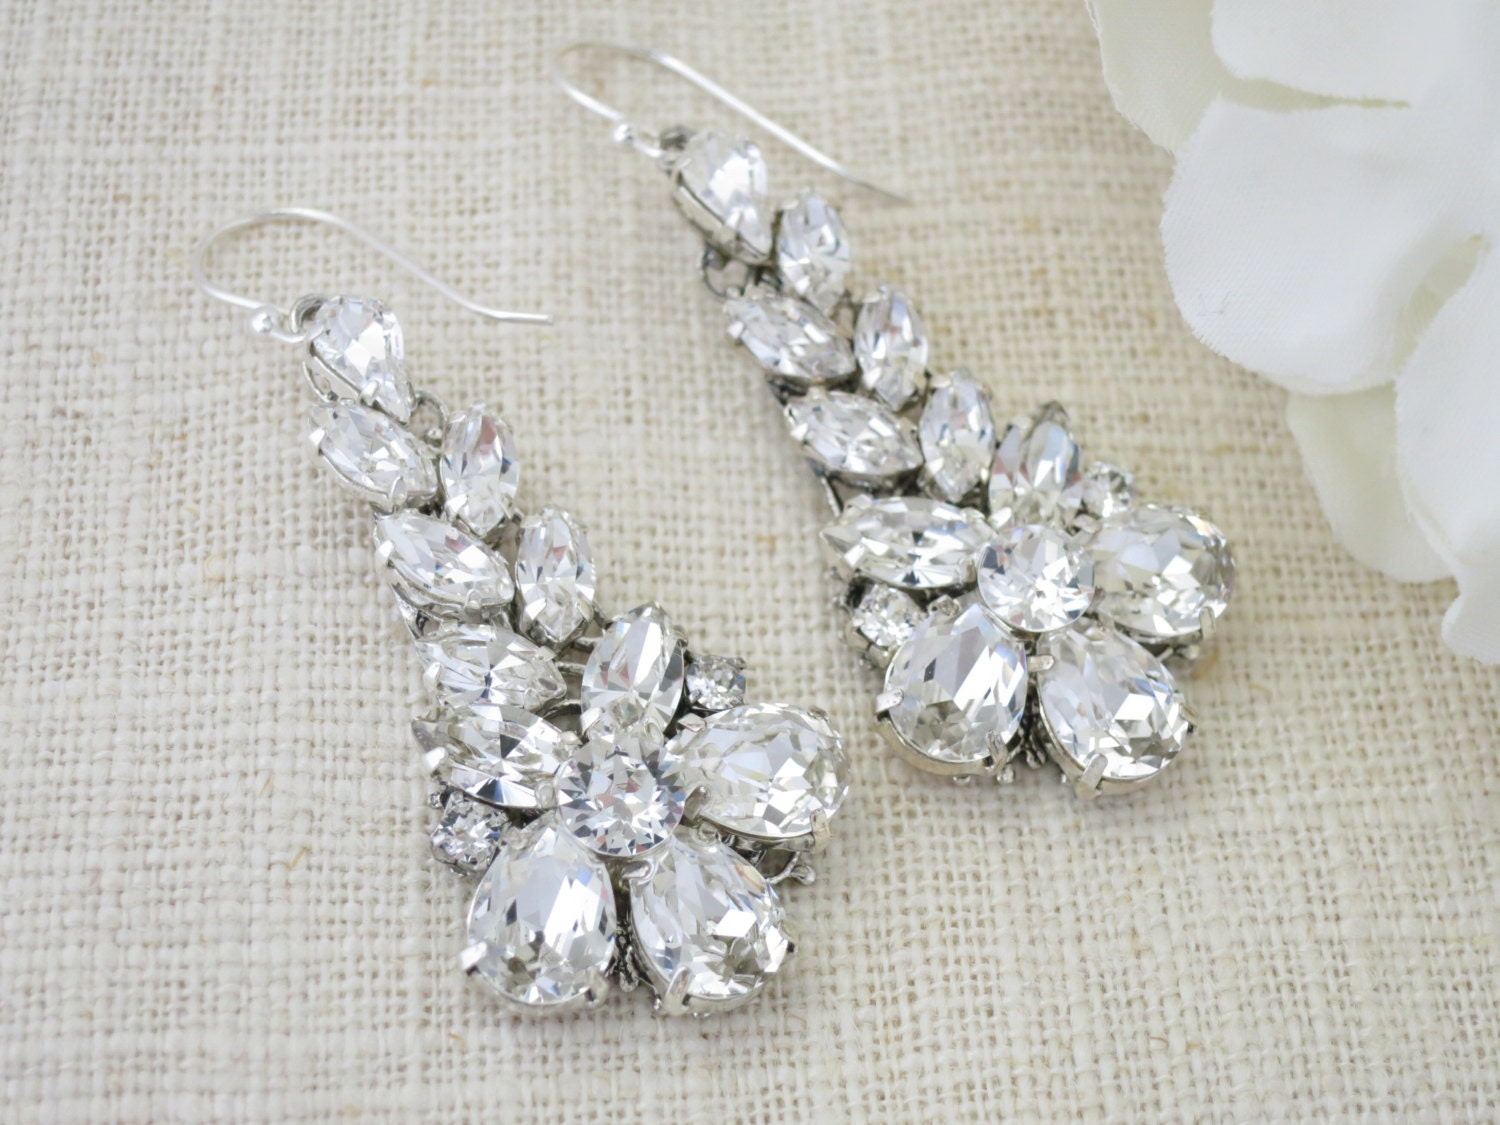 Crystal wedding earring, Swarovski rhinestone chandelier statement earring, Art Deco bridal earring